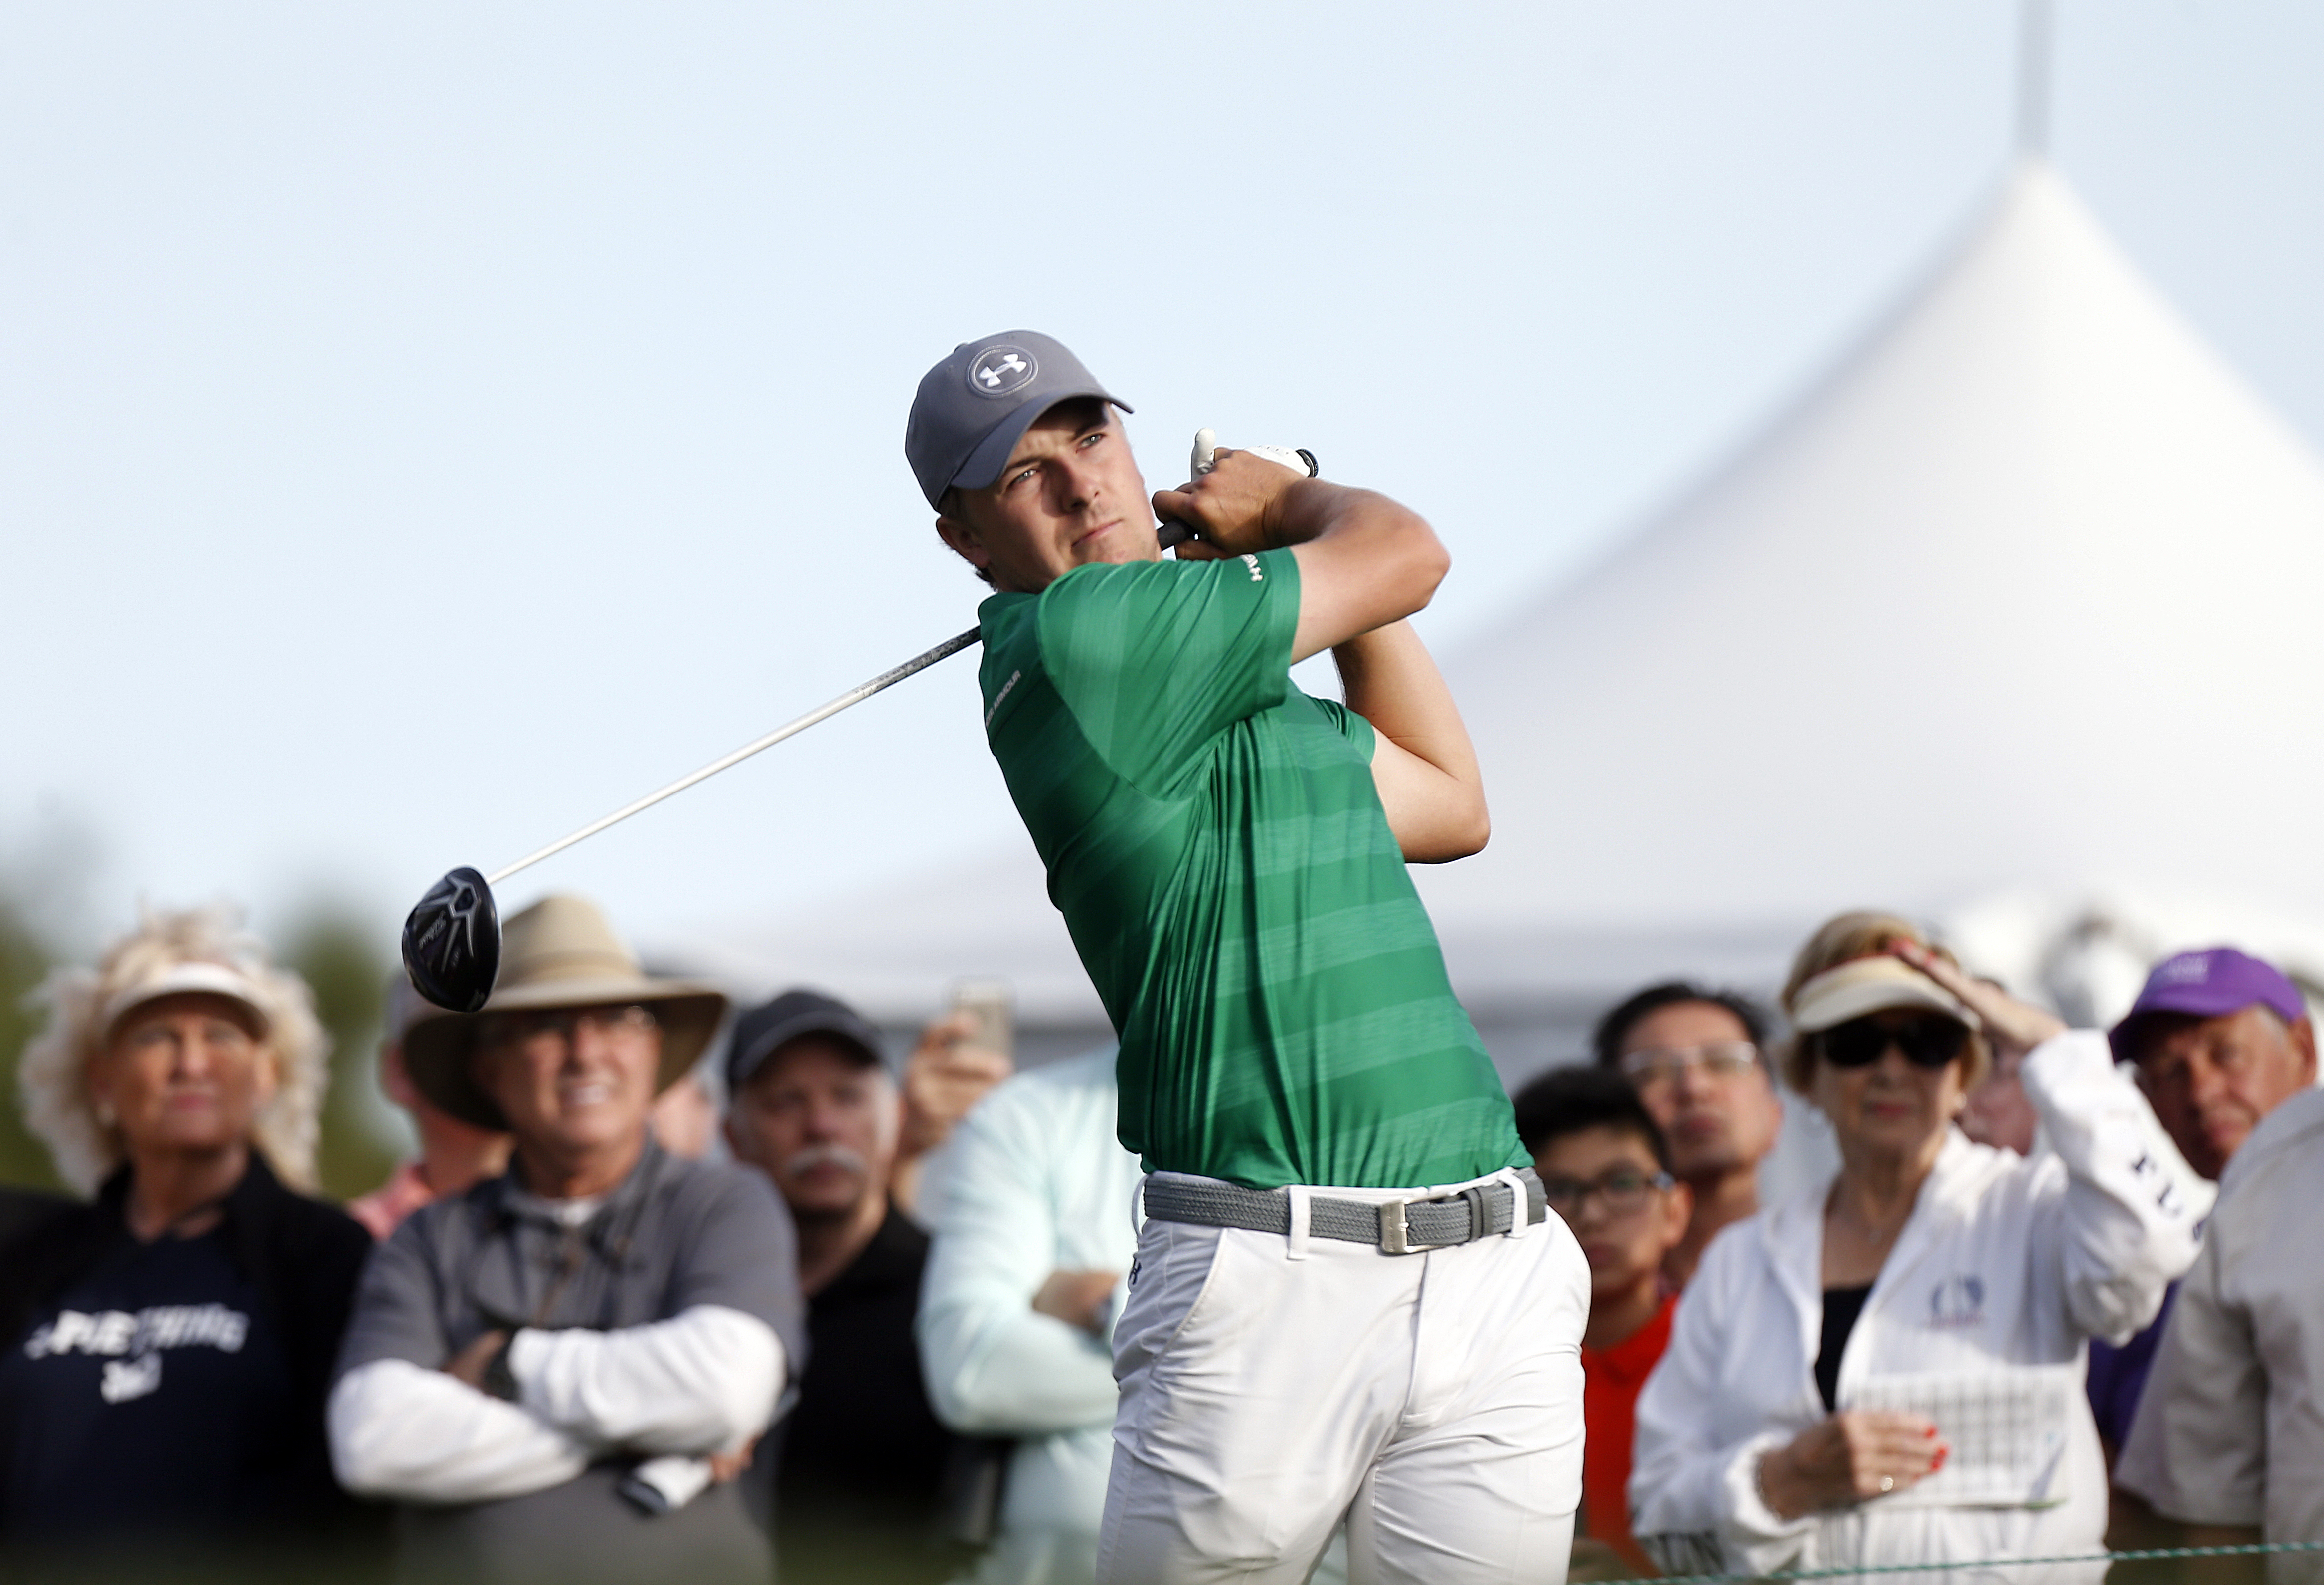 Jordan Spieth tees off on the 10th hole during the first round of the Valspar Championship golf tournament Thursday, March 10, 2016, in Palm Harbor, Fla. (AP Photo/Brian Blanco)